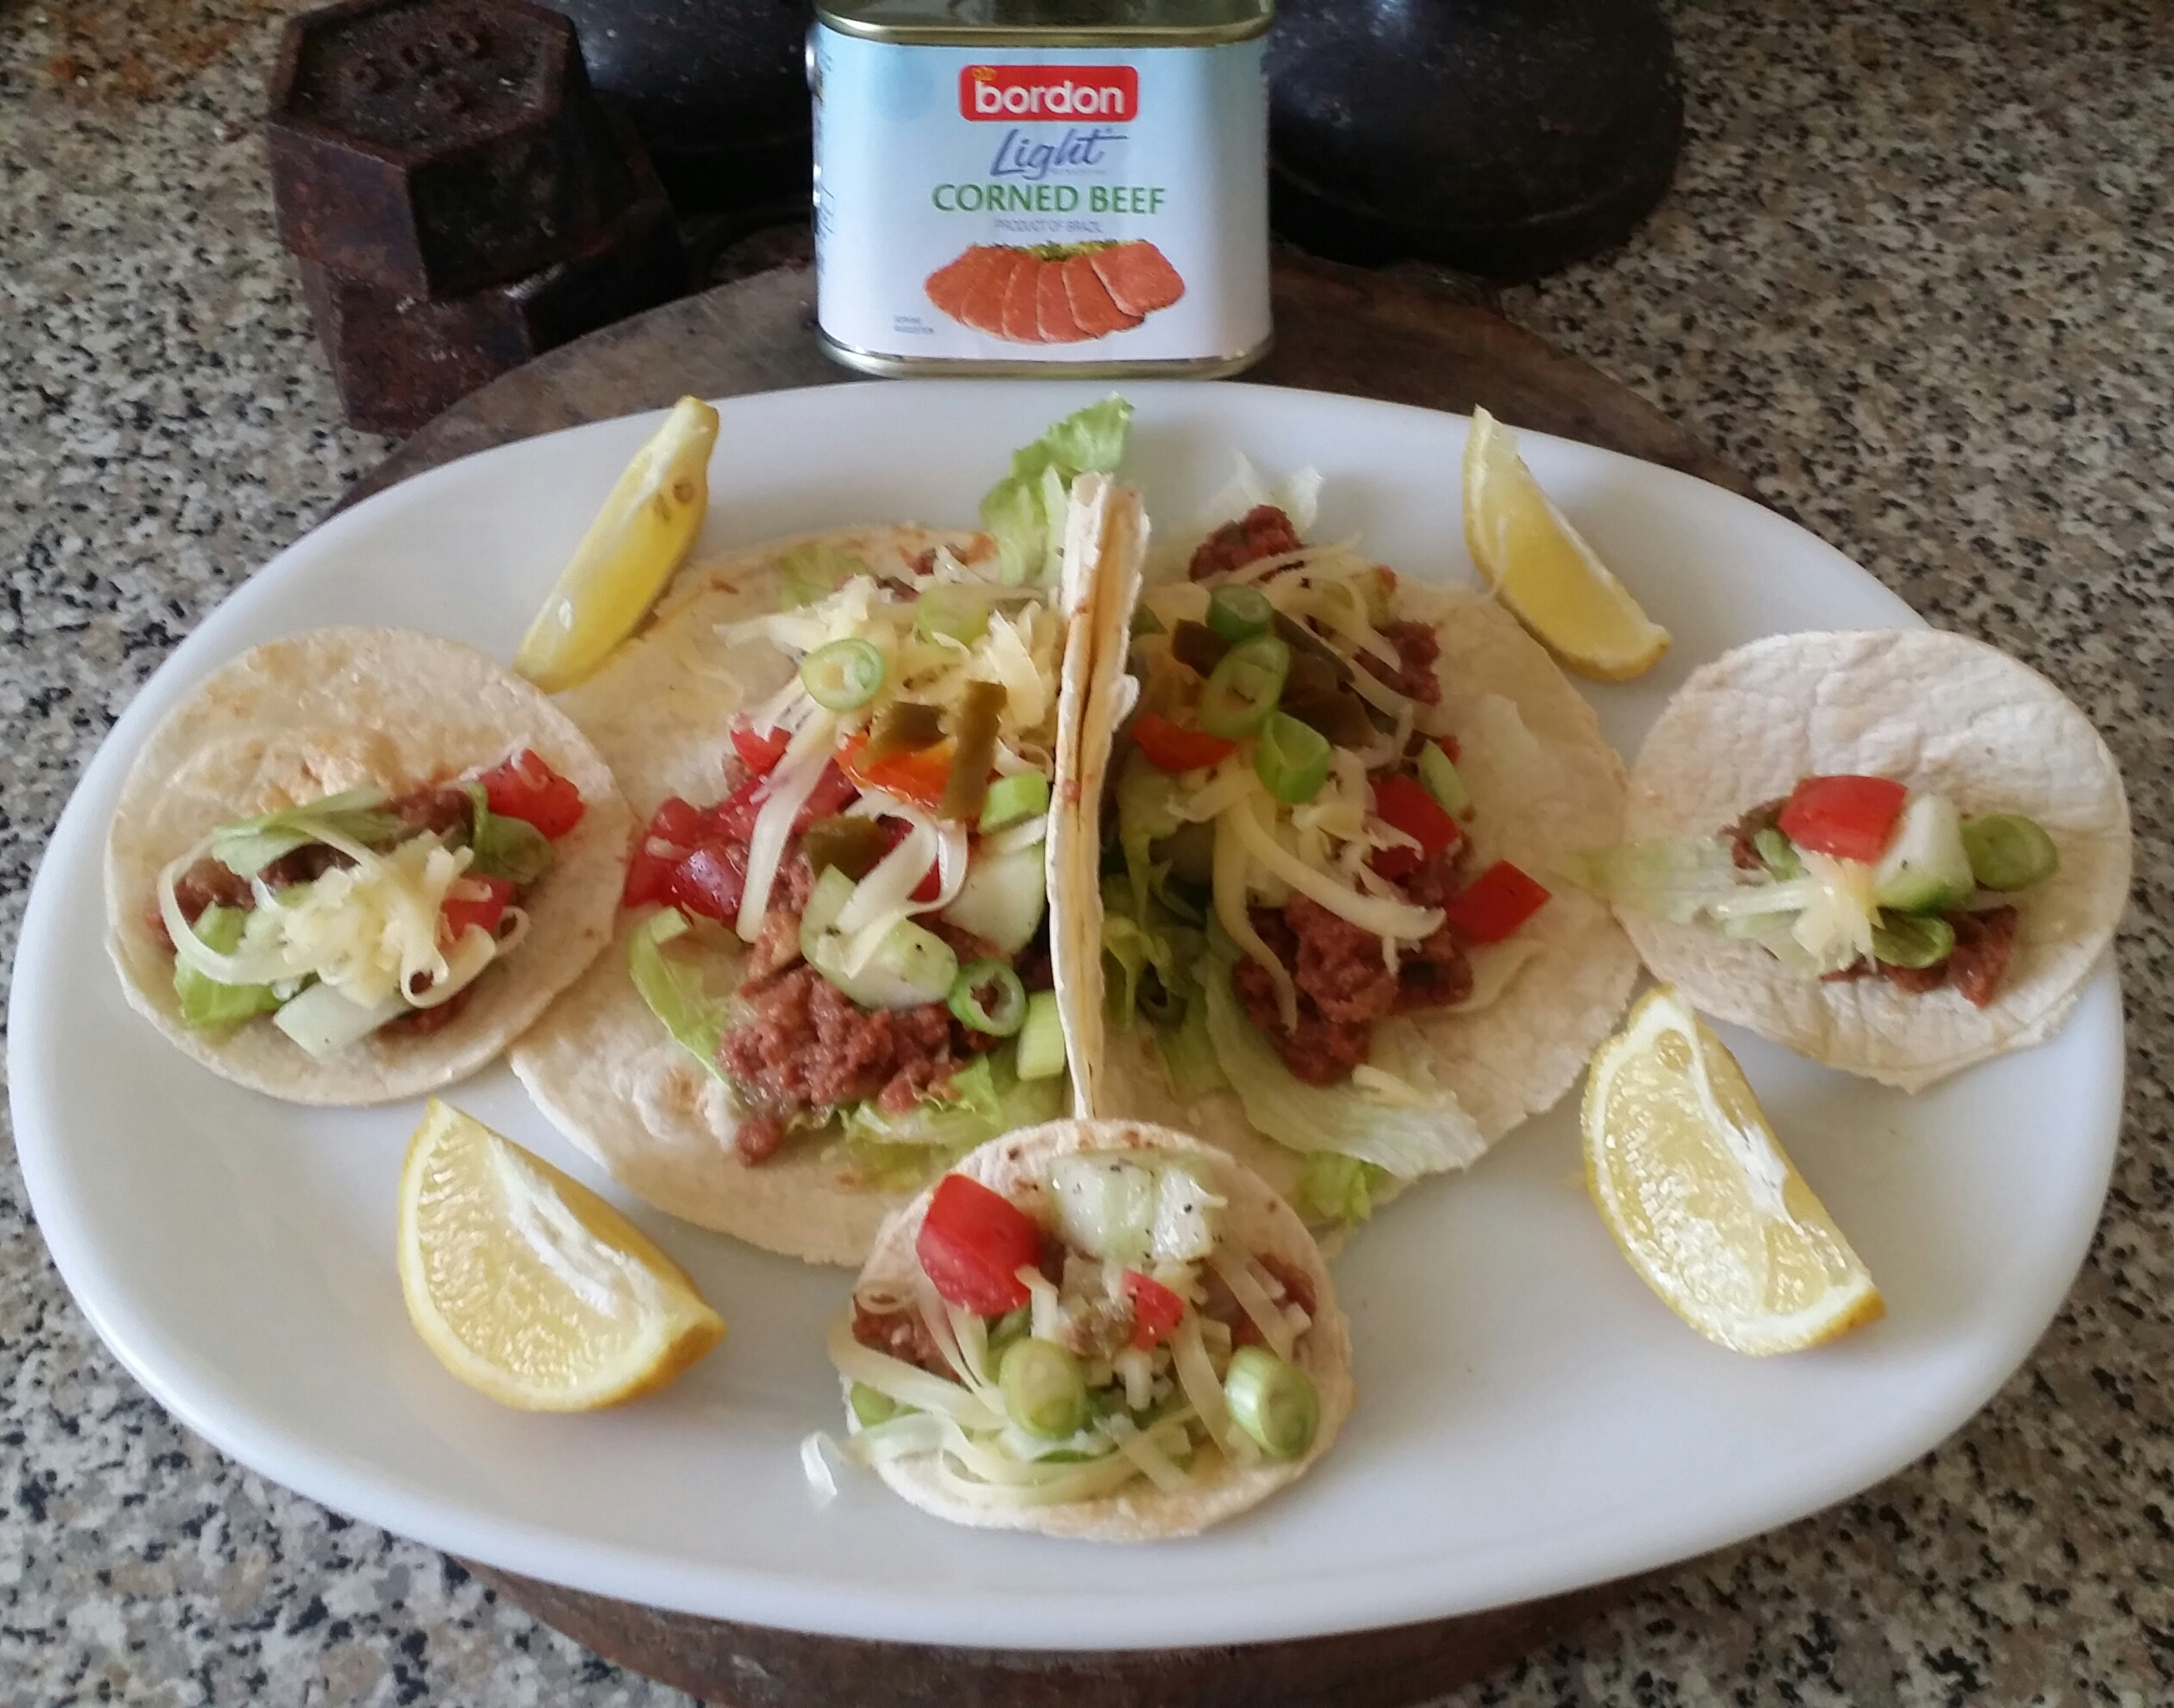 Cristabel Cutajar BORDON Recipe: Tacos with Bordon chile con carne